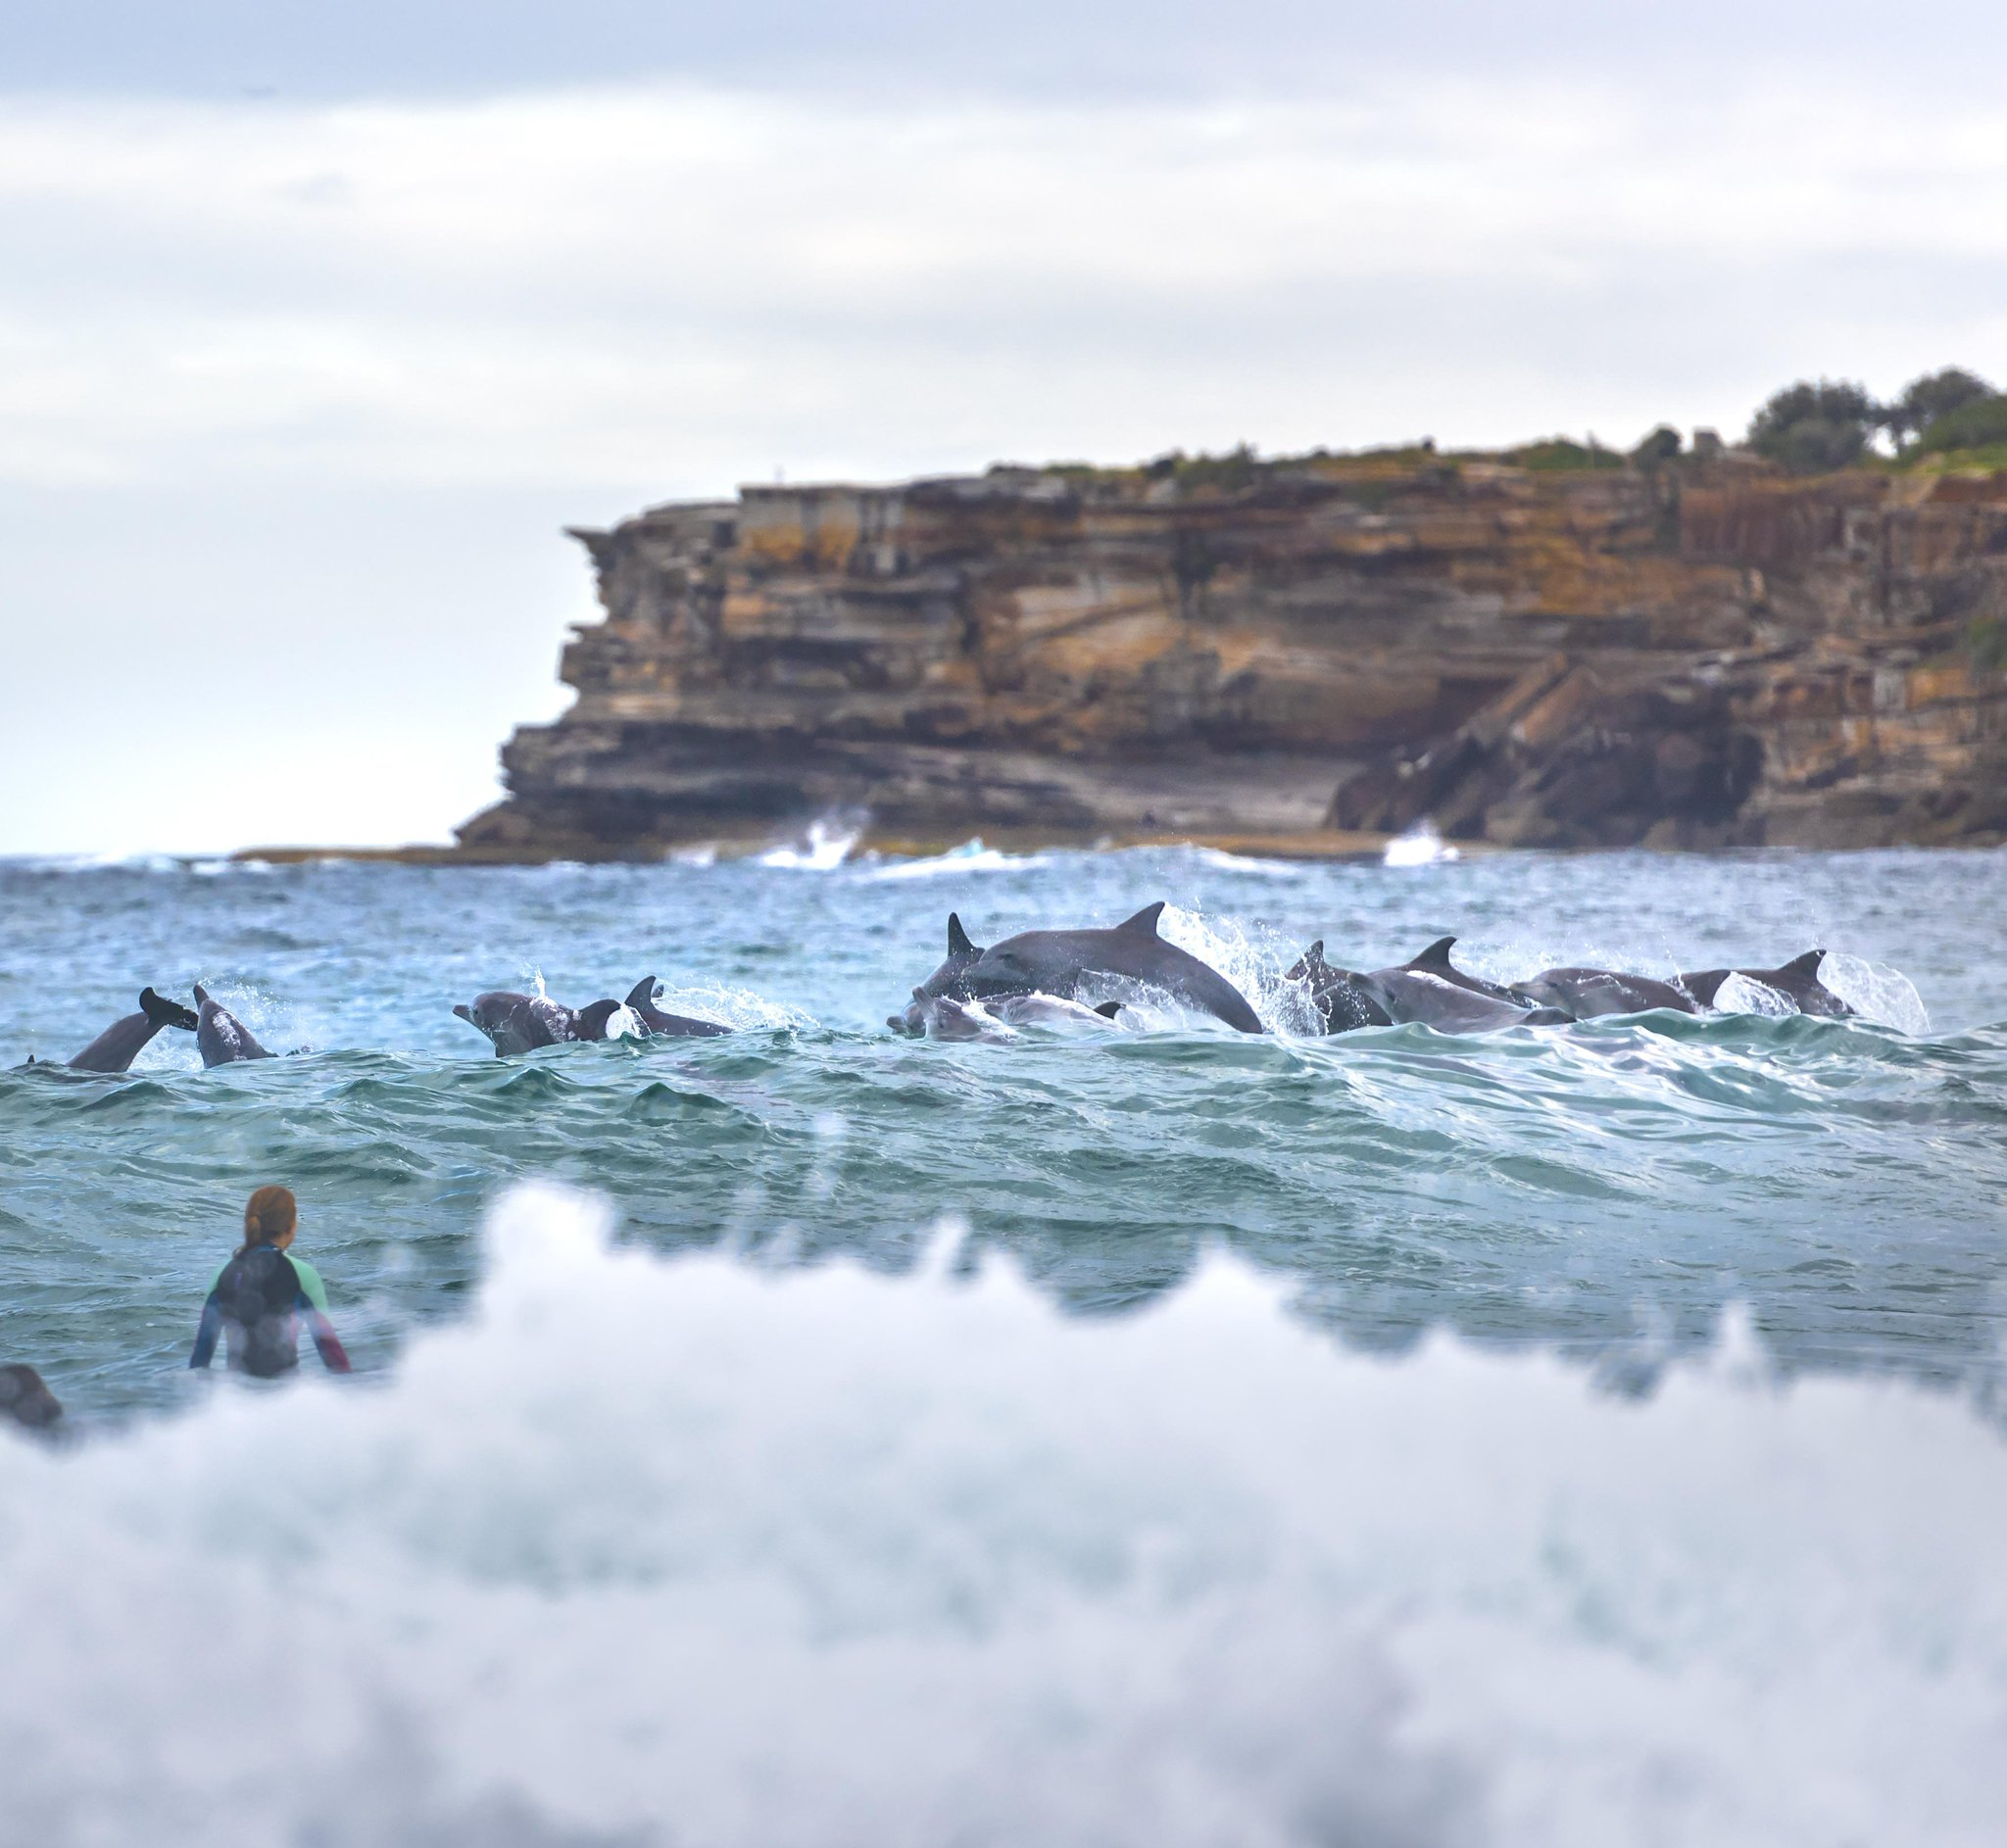 RT @Australia: Sharing waves with the locals at #TamaramaBeach in #Sydney 🐬🐬🐬 (via IG/rugligeri) https://t.co/awtMSsynOy